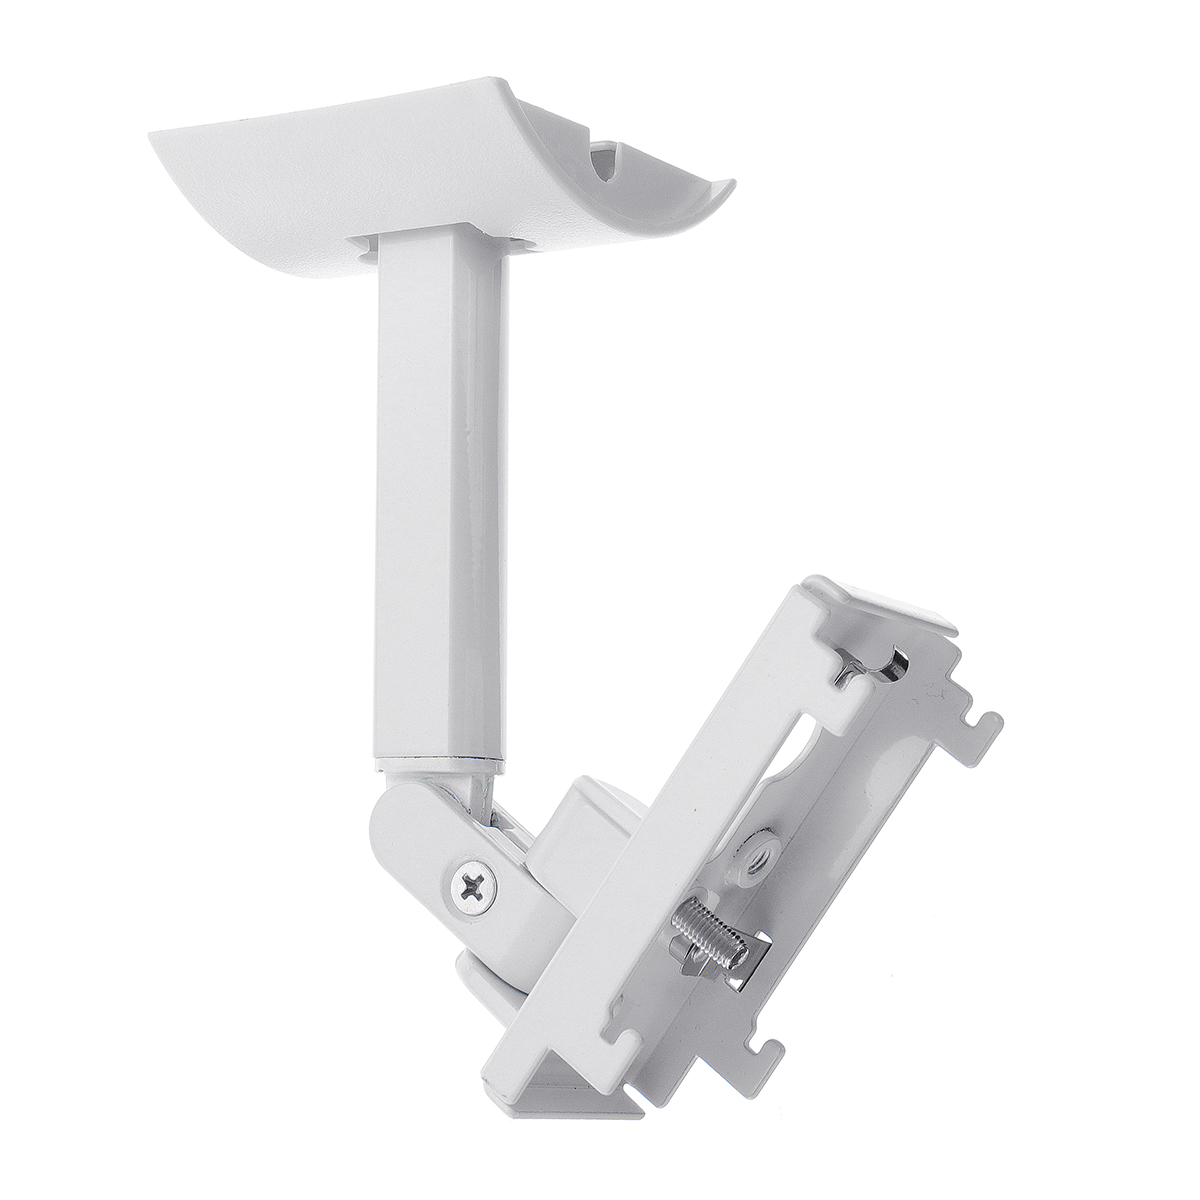 New Arrival Metal Wall Mount Bracket Speaker Holder For BOSE UB20 II Speaker Wall Ceiling Speaker Stand Holder